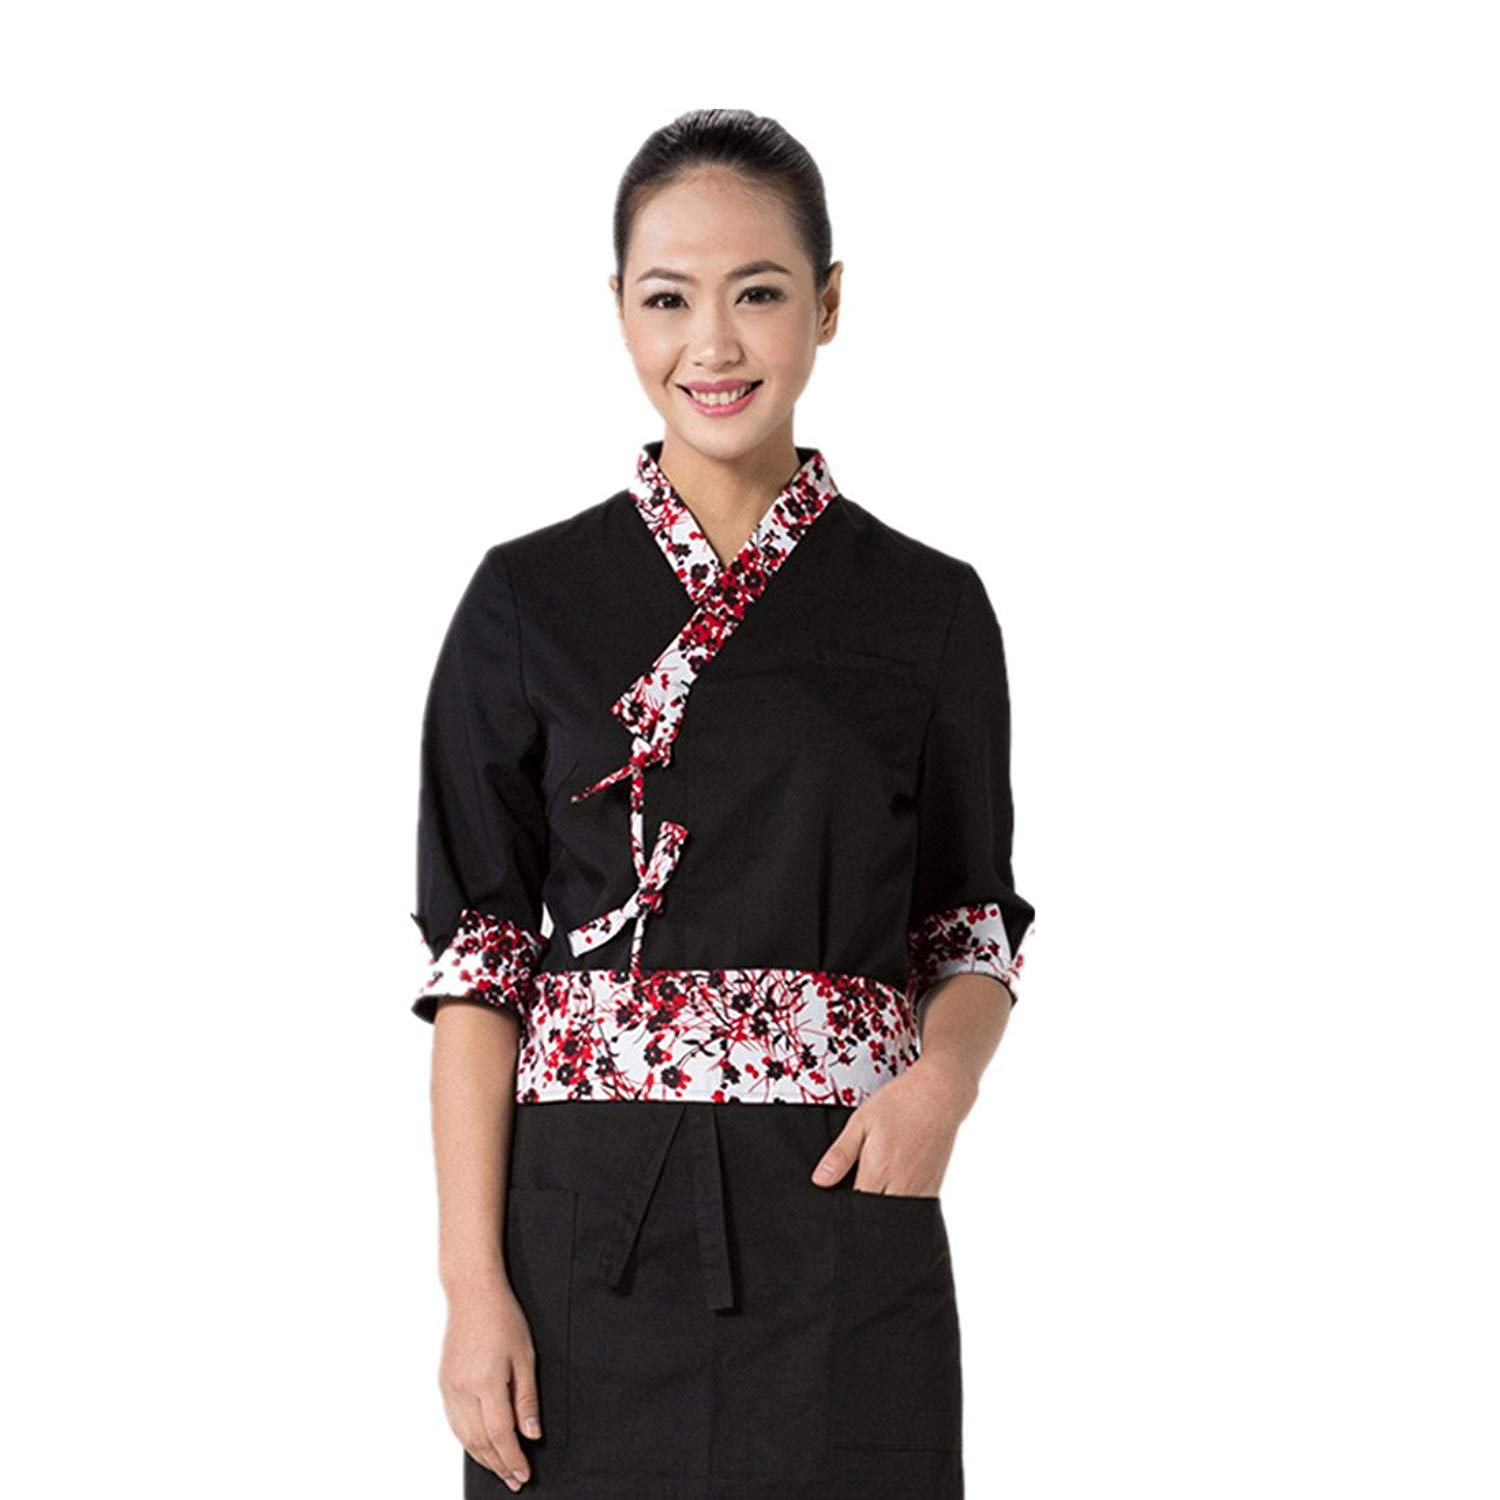 Japanese Sushi Chef Coat With Flower Pattern For Men And Women Restaurant Uniform Chef Jackets